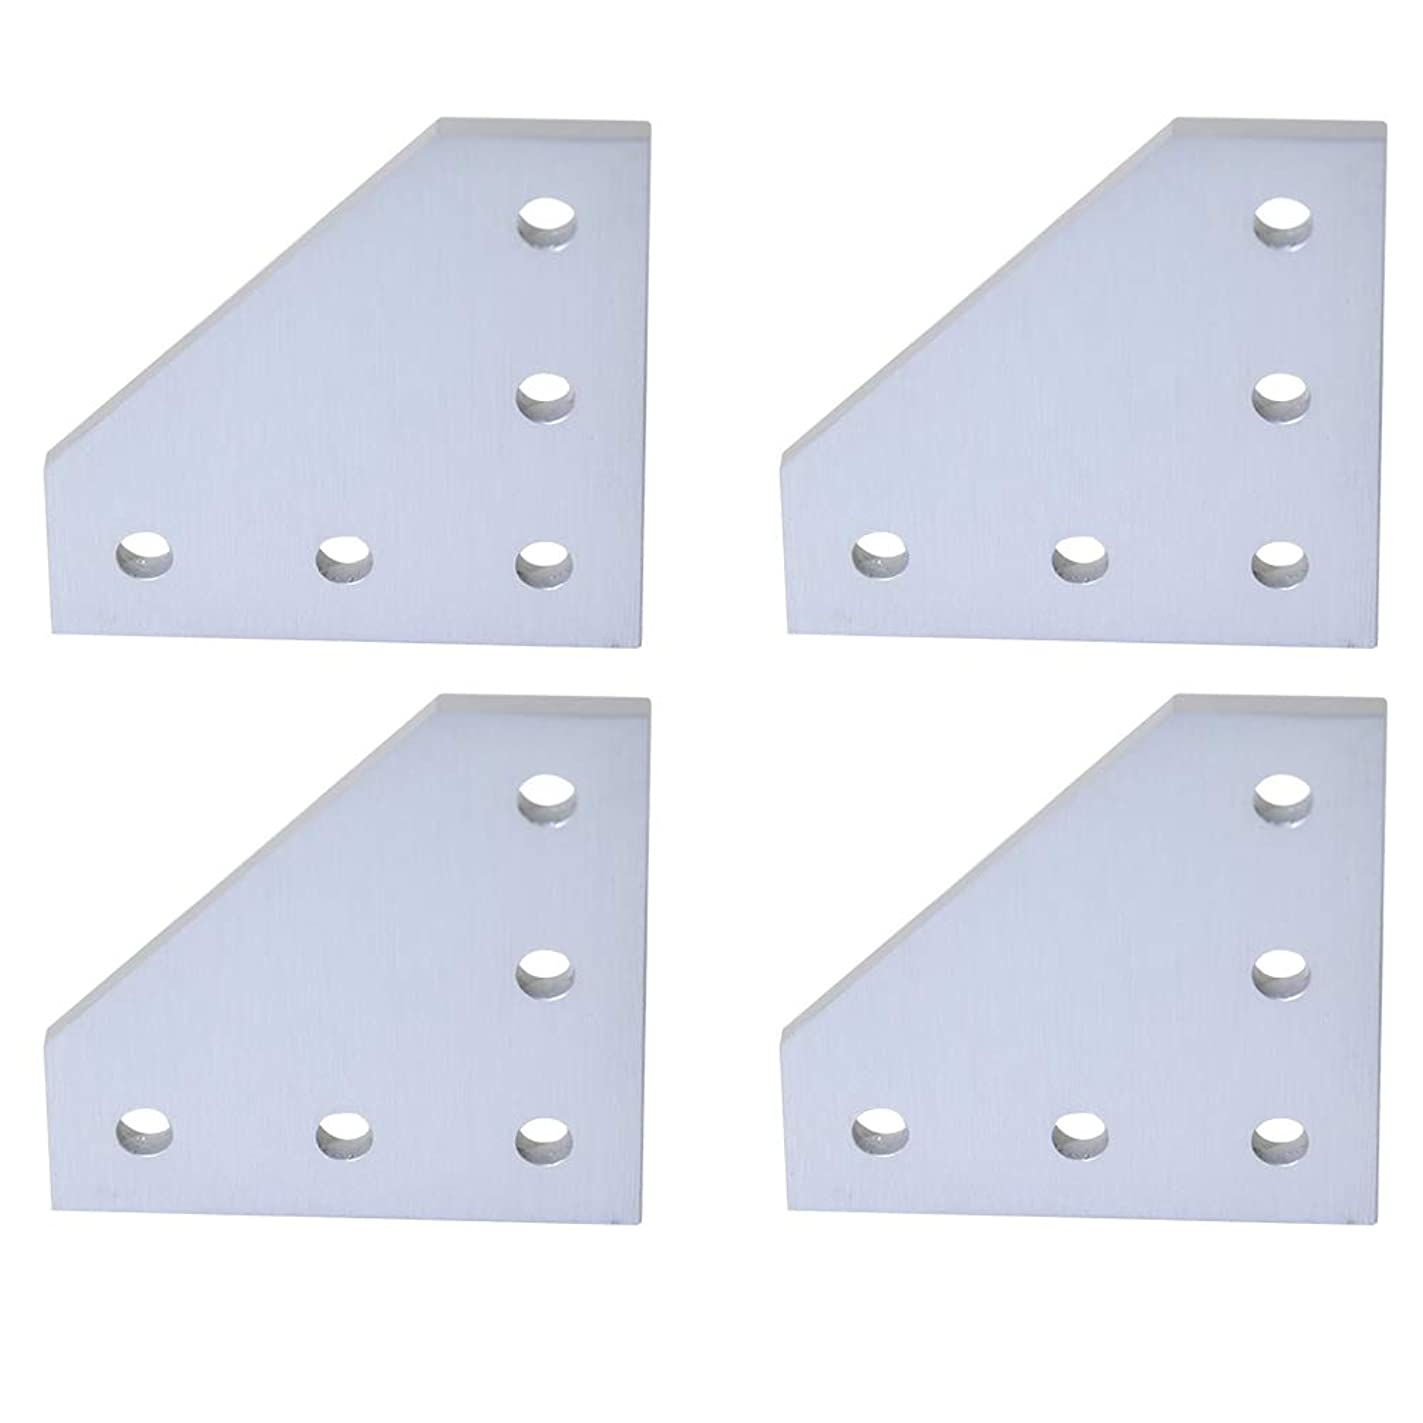 Boeray 4pcs 5-Hole 90 Degree L Shape Outside Joining Plate for 2020 Series Aluminum Profile, Joint Bracket Plate